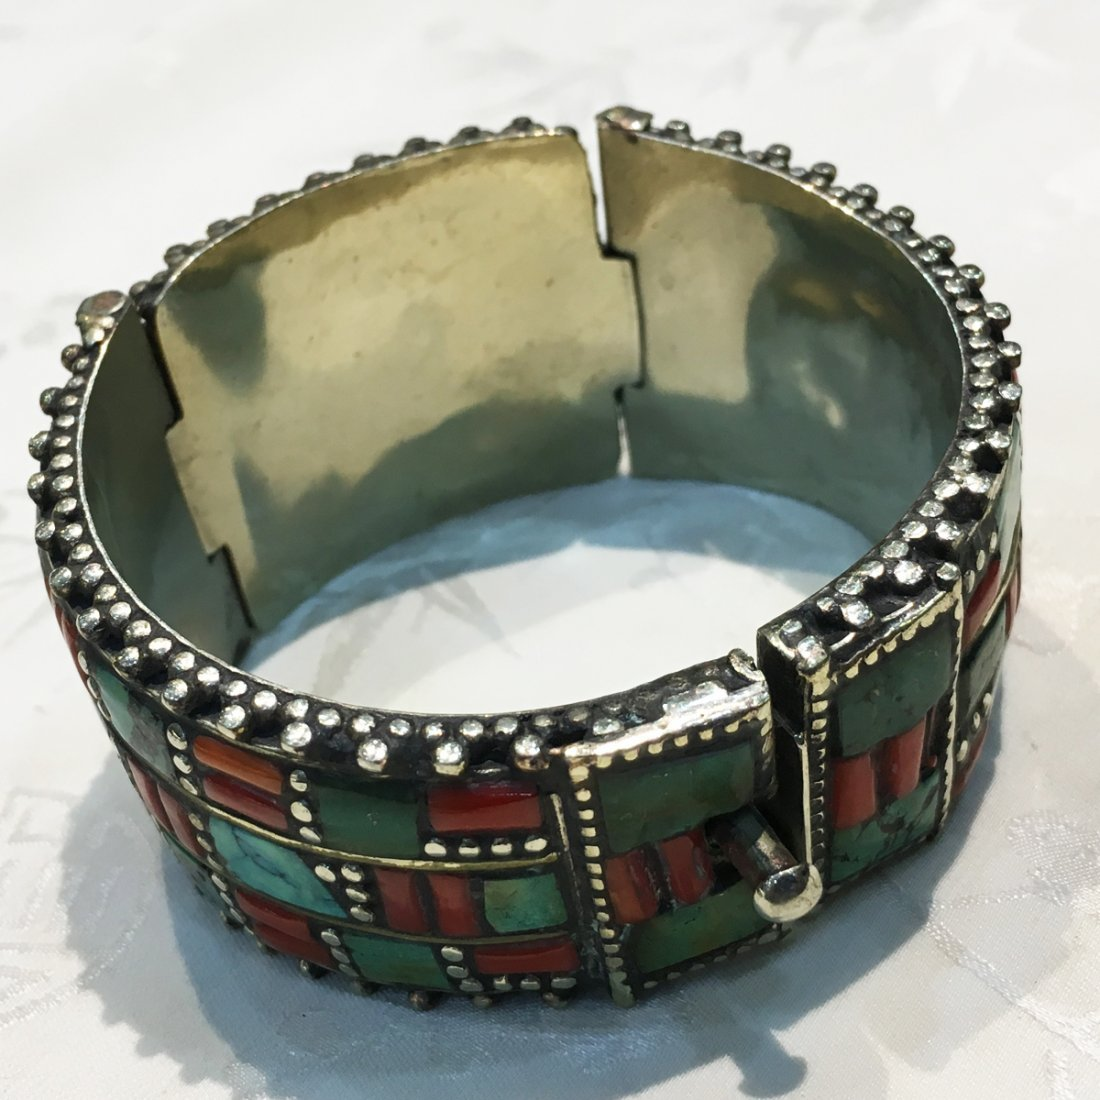 Tibetan Turquoise & Coral Statement Bangle - 3